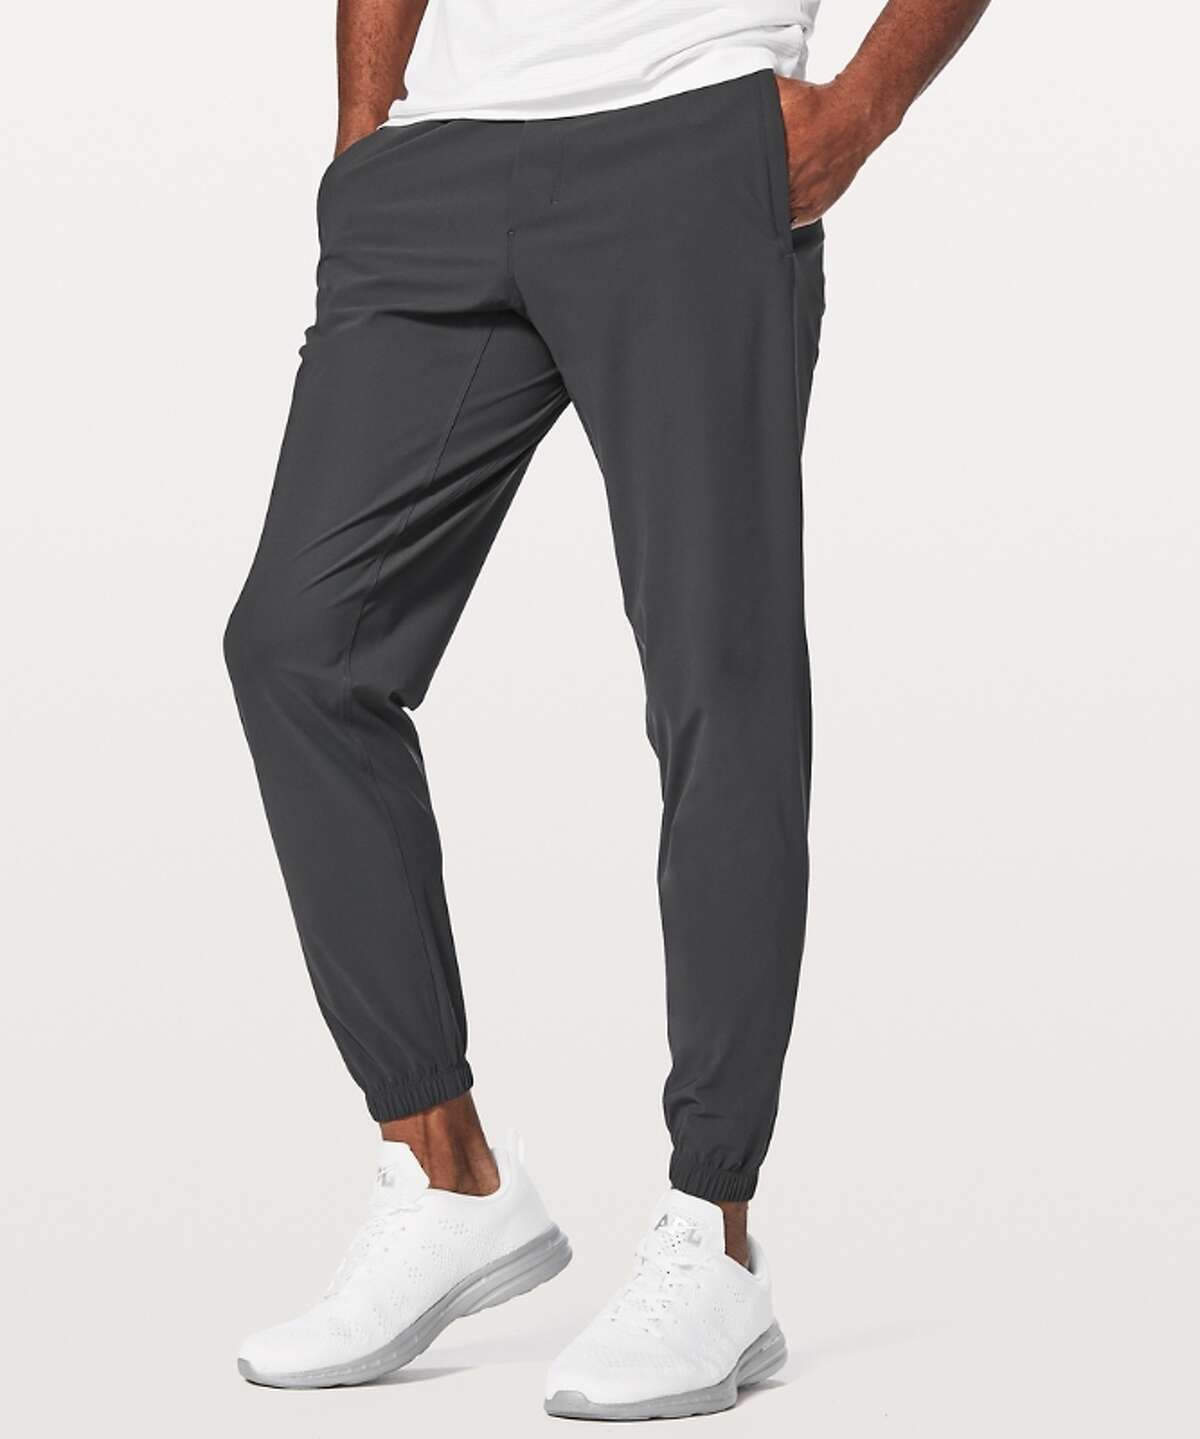 If I really like a particular pair of pants, I buy three of the same pair so I can wear them every day.